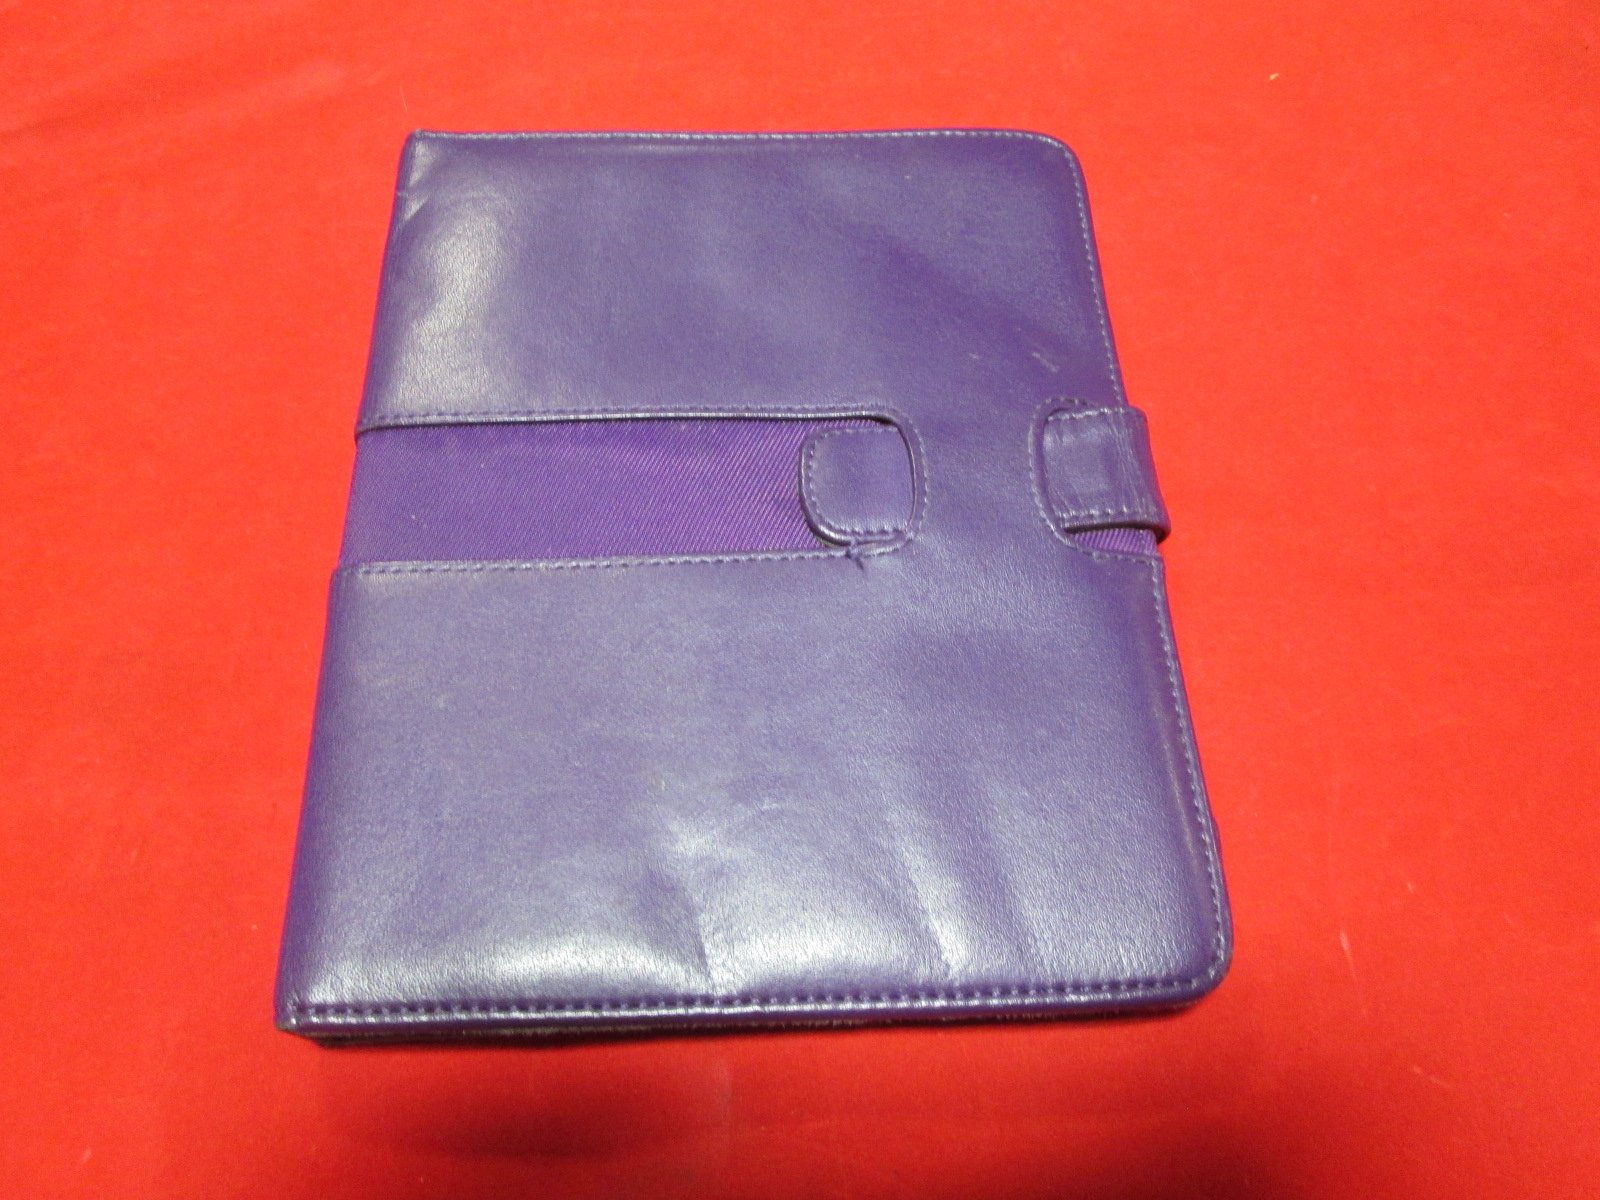 M-Edge 8 inchFoldable Folio Cover Case Nook Touch eReader Purple